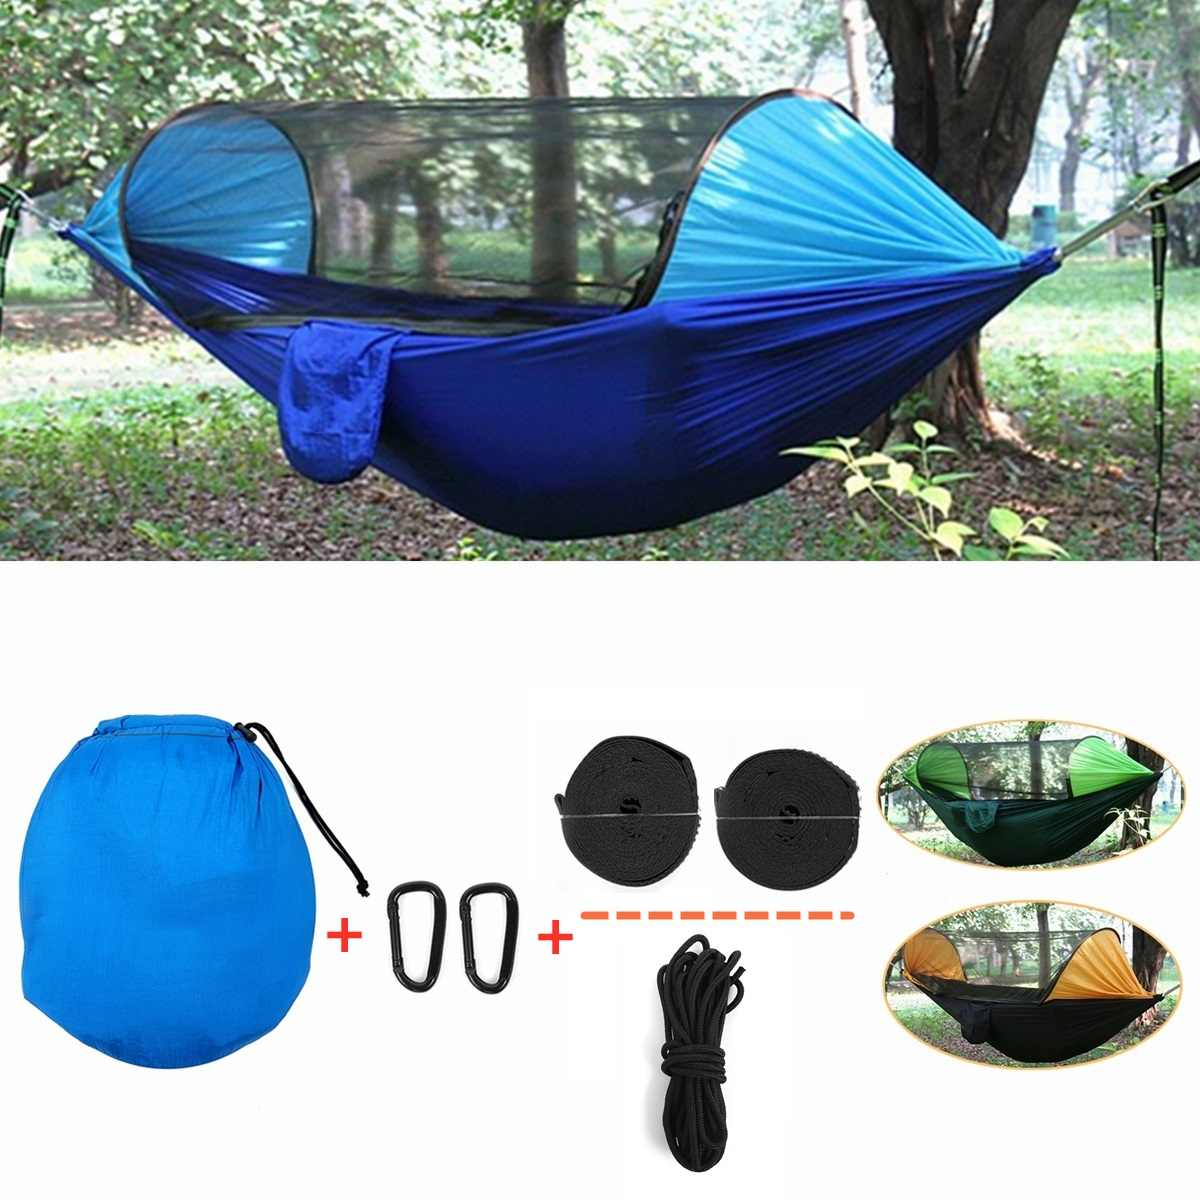 Outdoor Mosquito Net Parachute Hammock Portable Camping Hunting Hanging Sleeping Bed High Strength Sleeping Swing